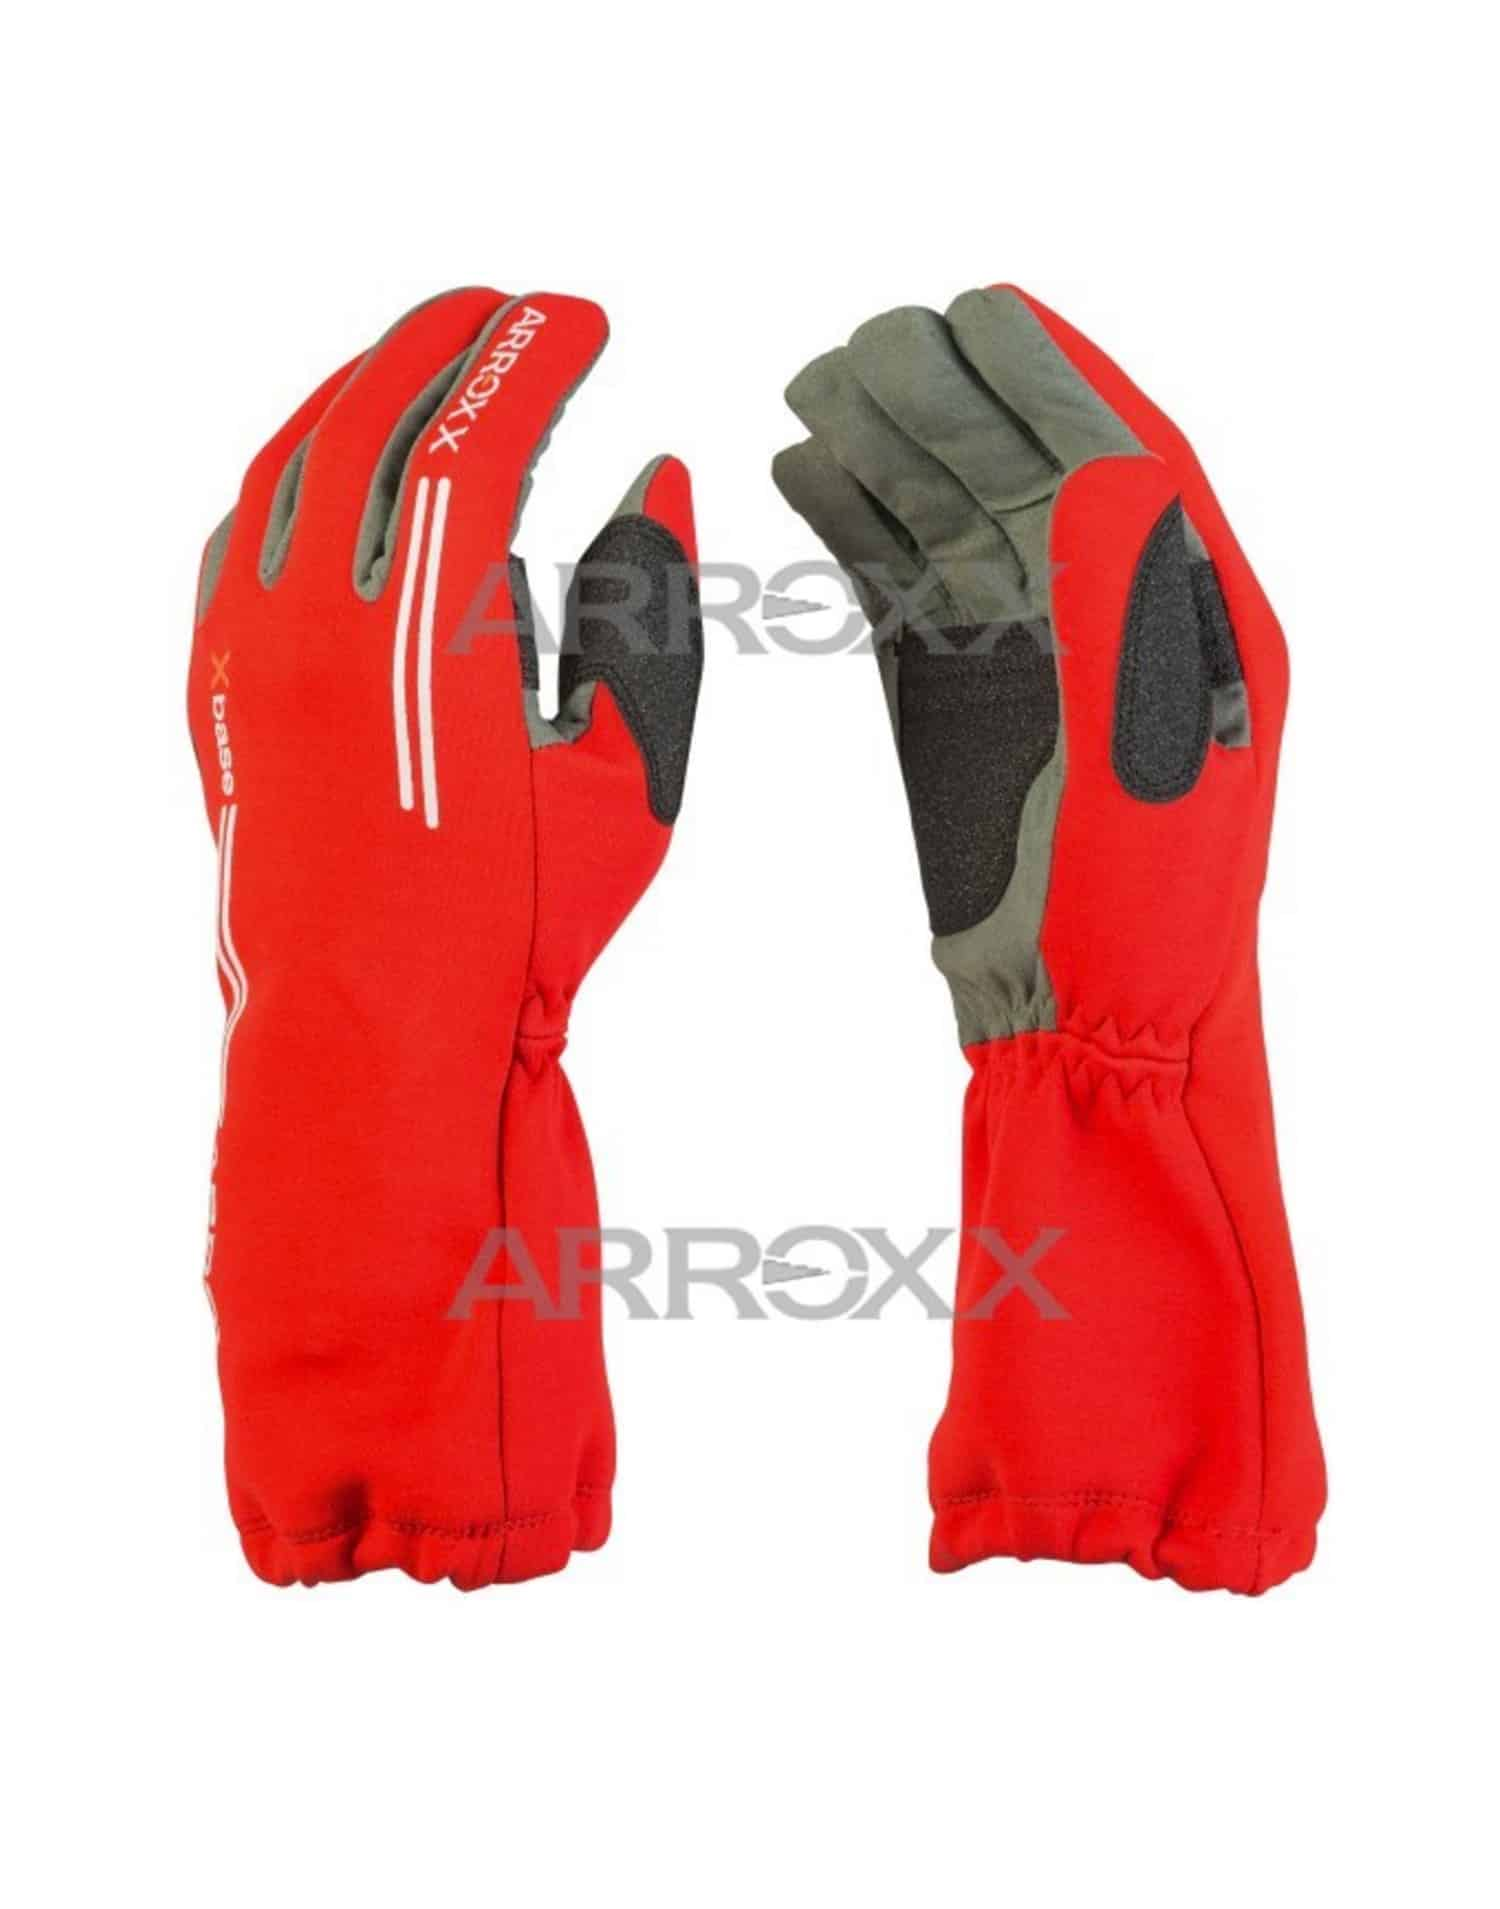 xbasegloves_red